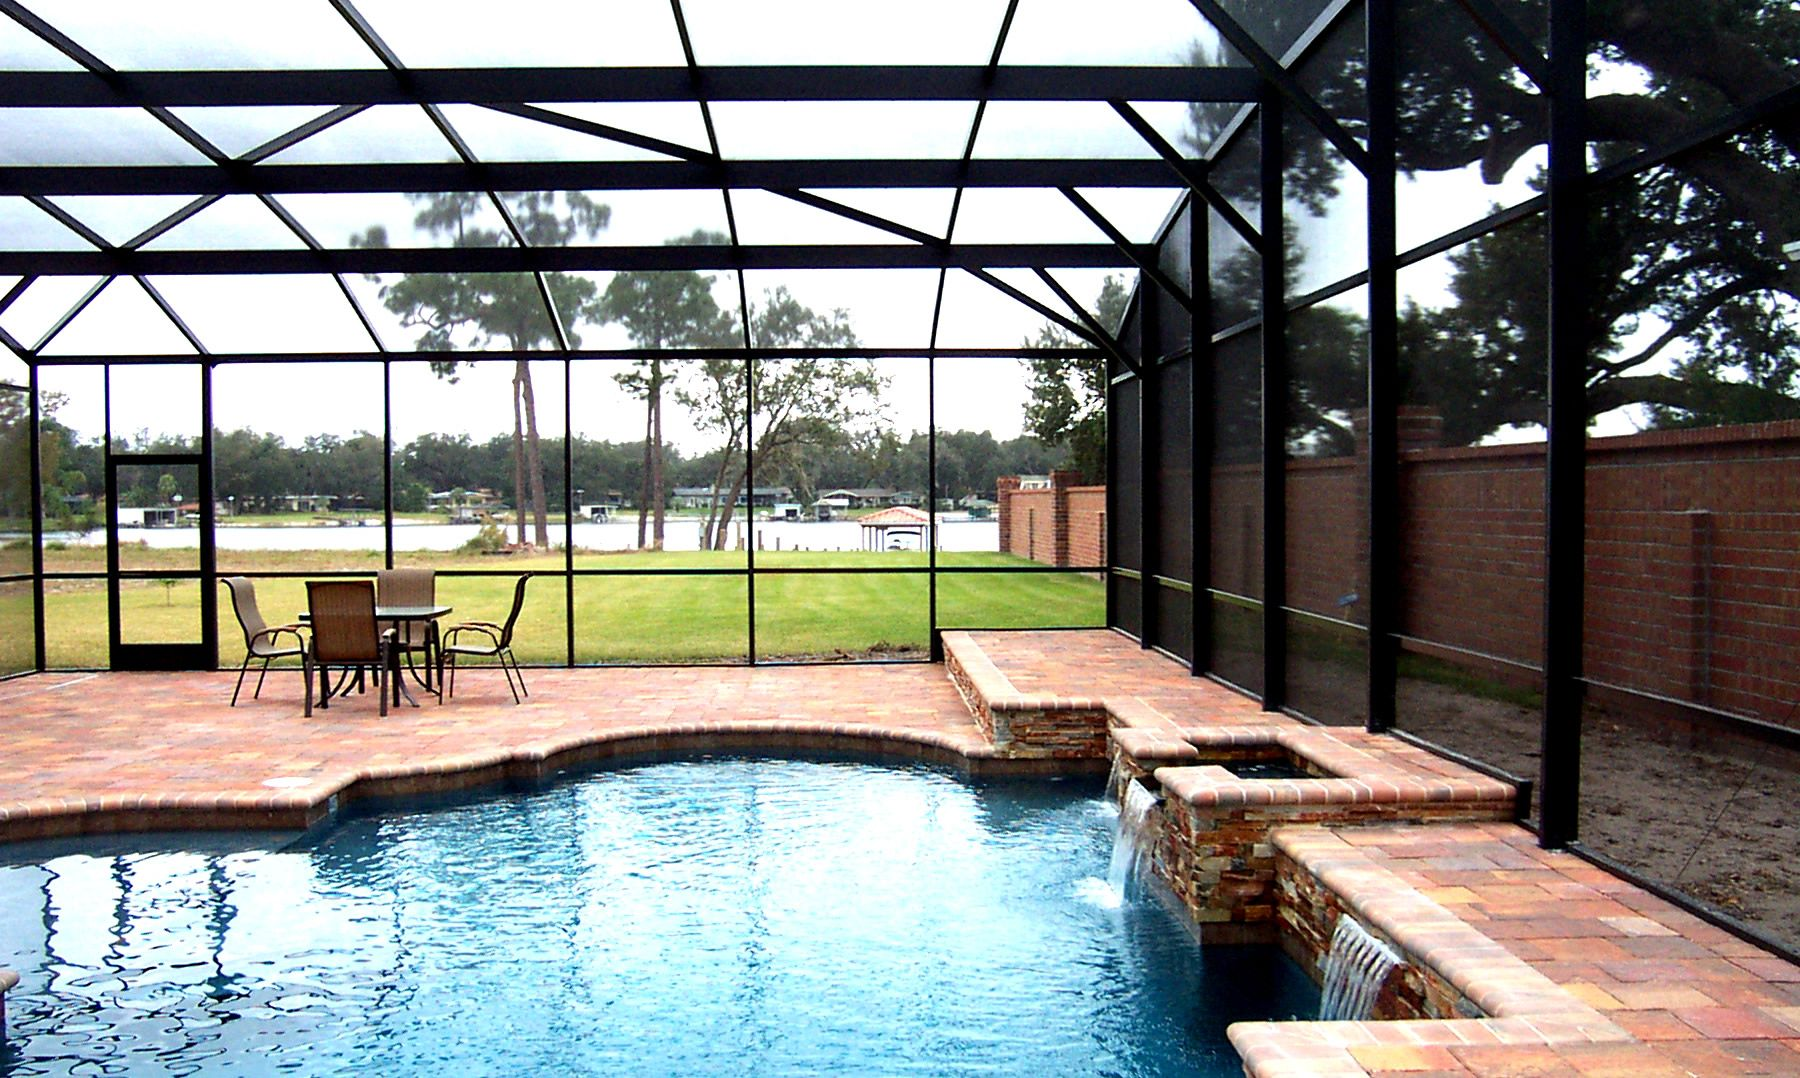 Aluminum Screen Enclosure-Boca Raton Pool Screen Enclosure Installation and Patio Screen Repairs Services-We do screen enclosures, patios, pool screens, fences, aluminum roofs, professional screen building, Pool Screen Enclosures, Patio Screen Enclosures, Fences & Gates, Storm Shutters, Decks, Balconies & Railings, Installation, Repairs, and more